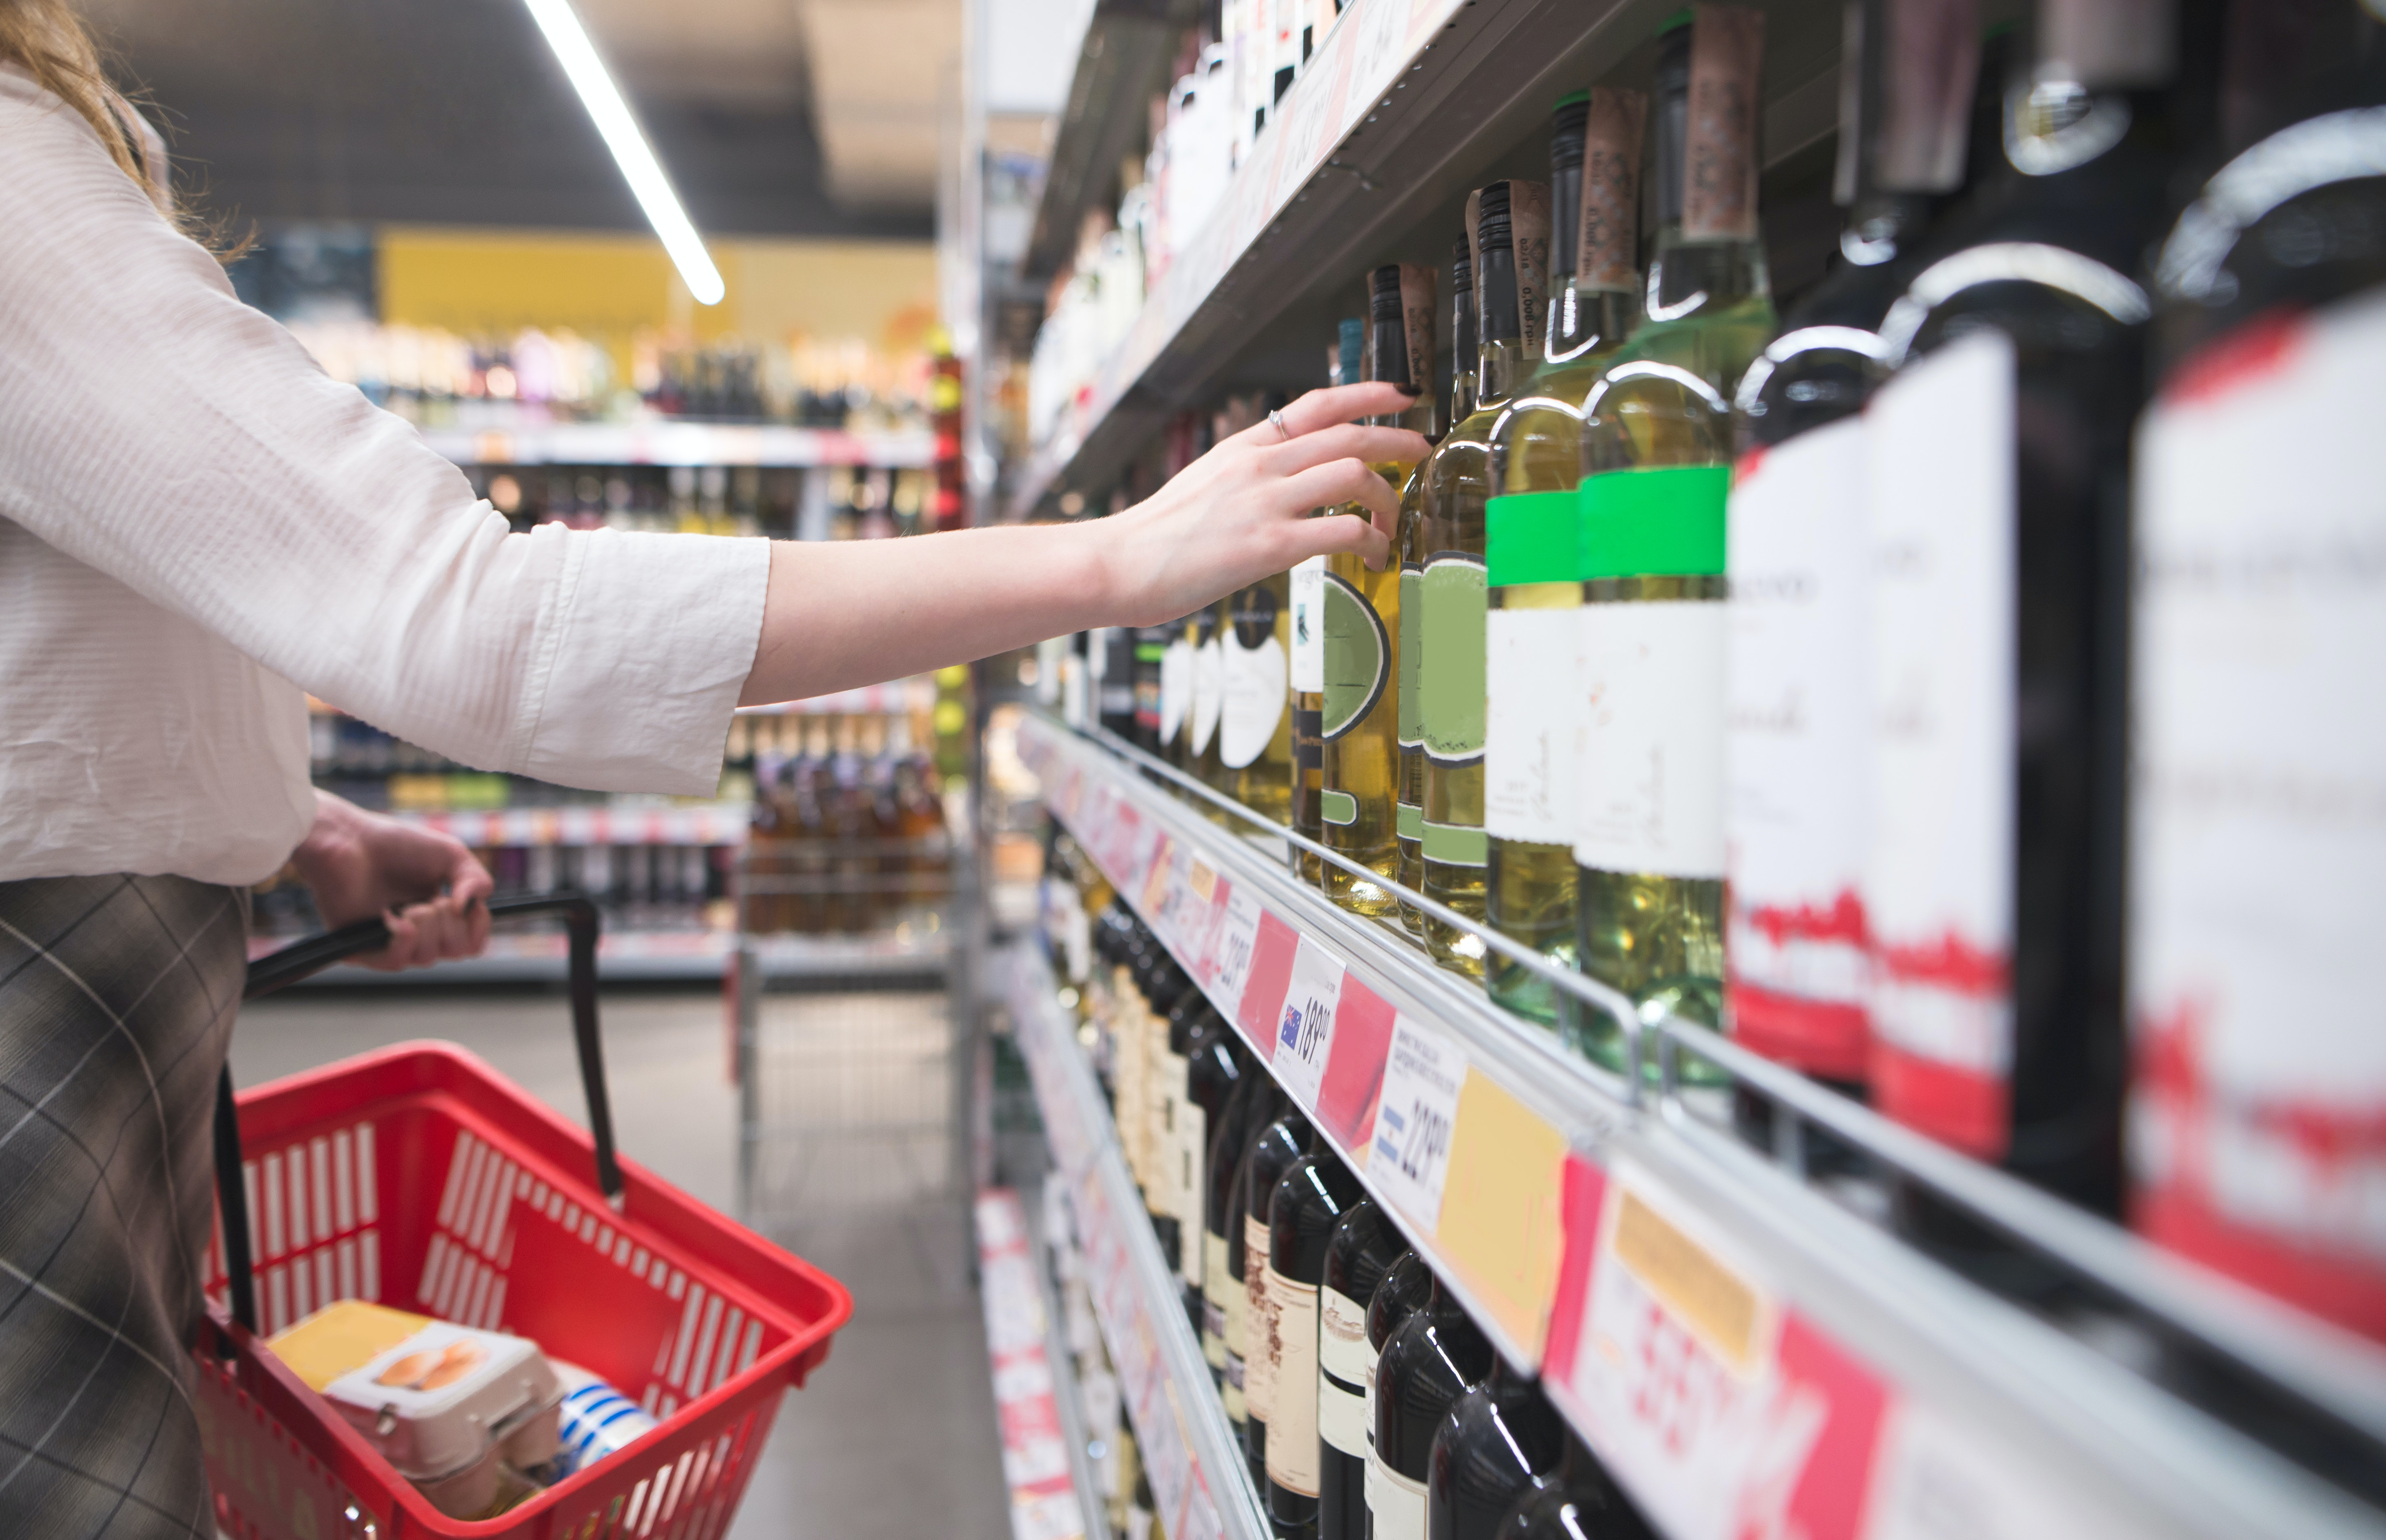 What's the most value for money way to tackle obesity? Increase taxes on alcohol